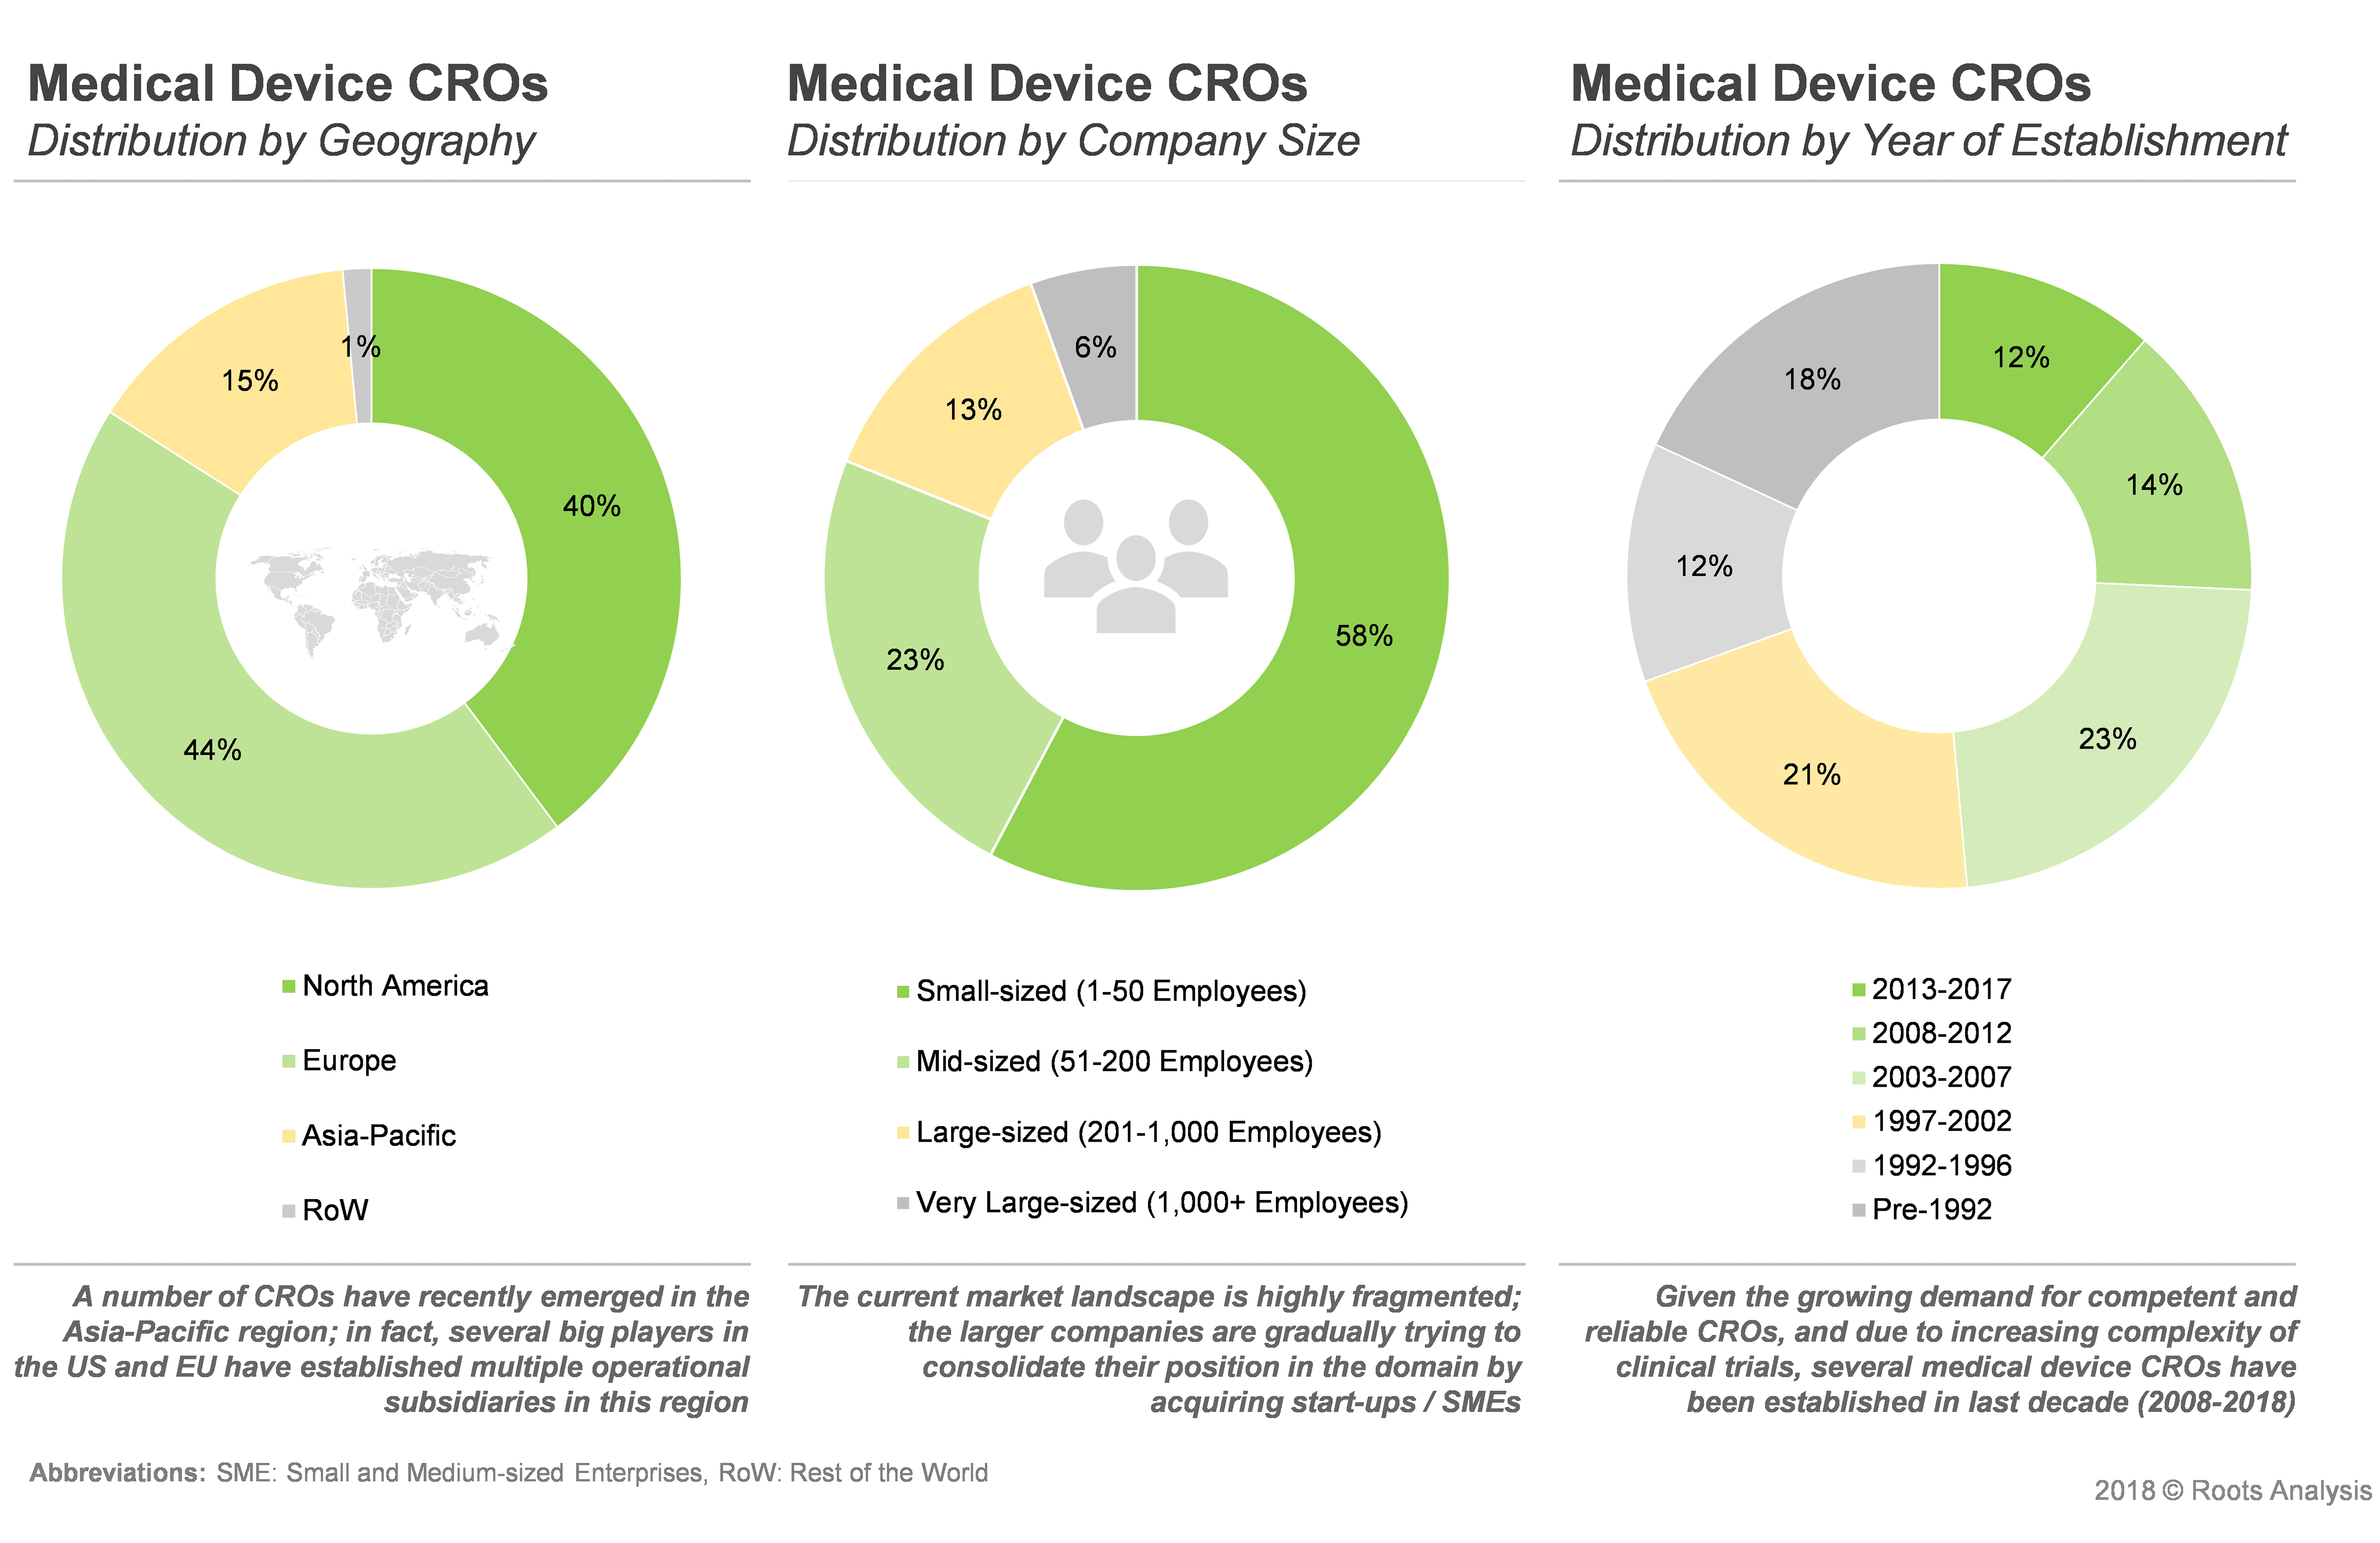 Medical Device Companies, Medical Device Market Research - Market Overview